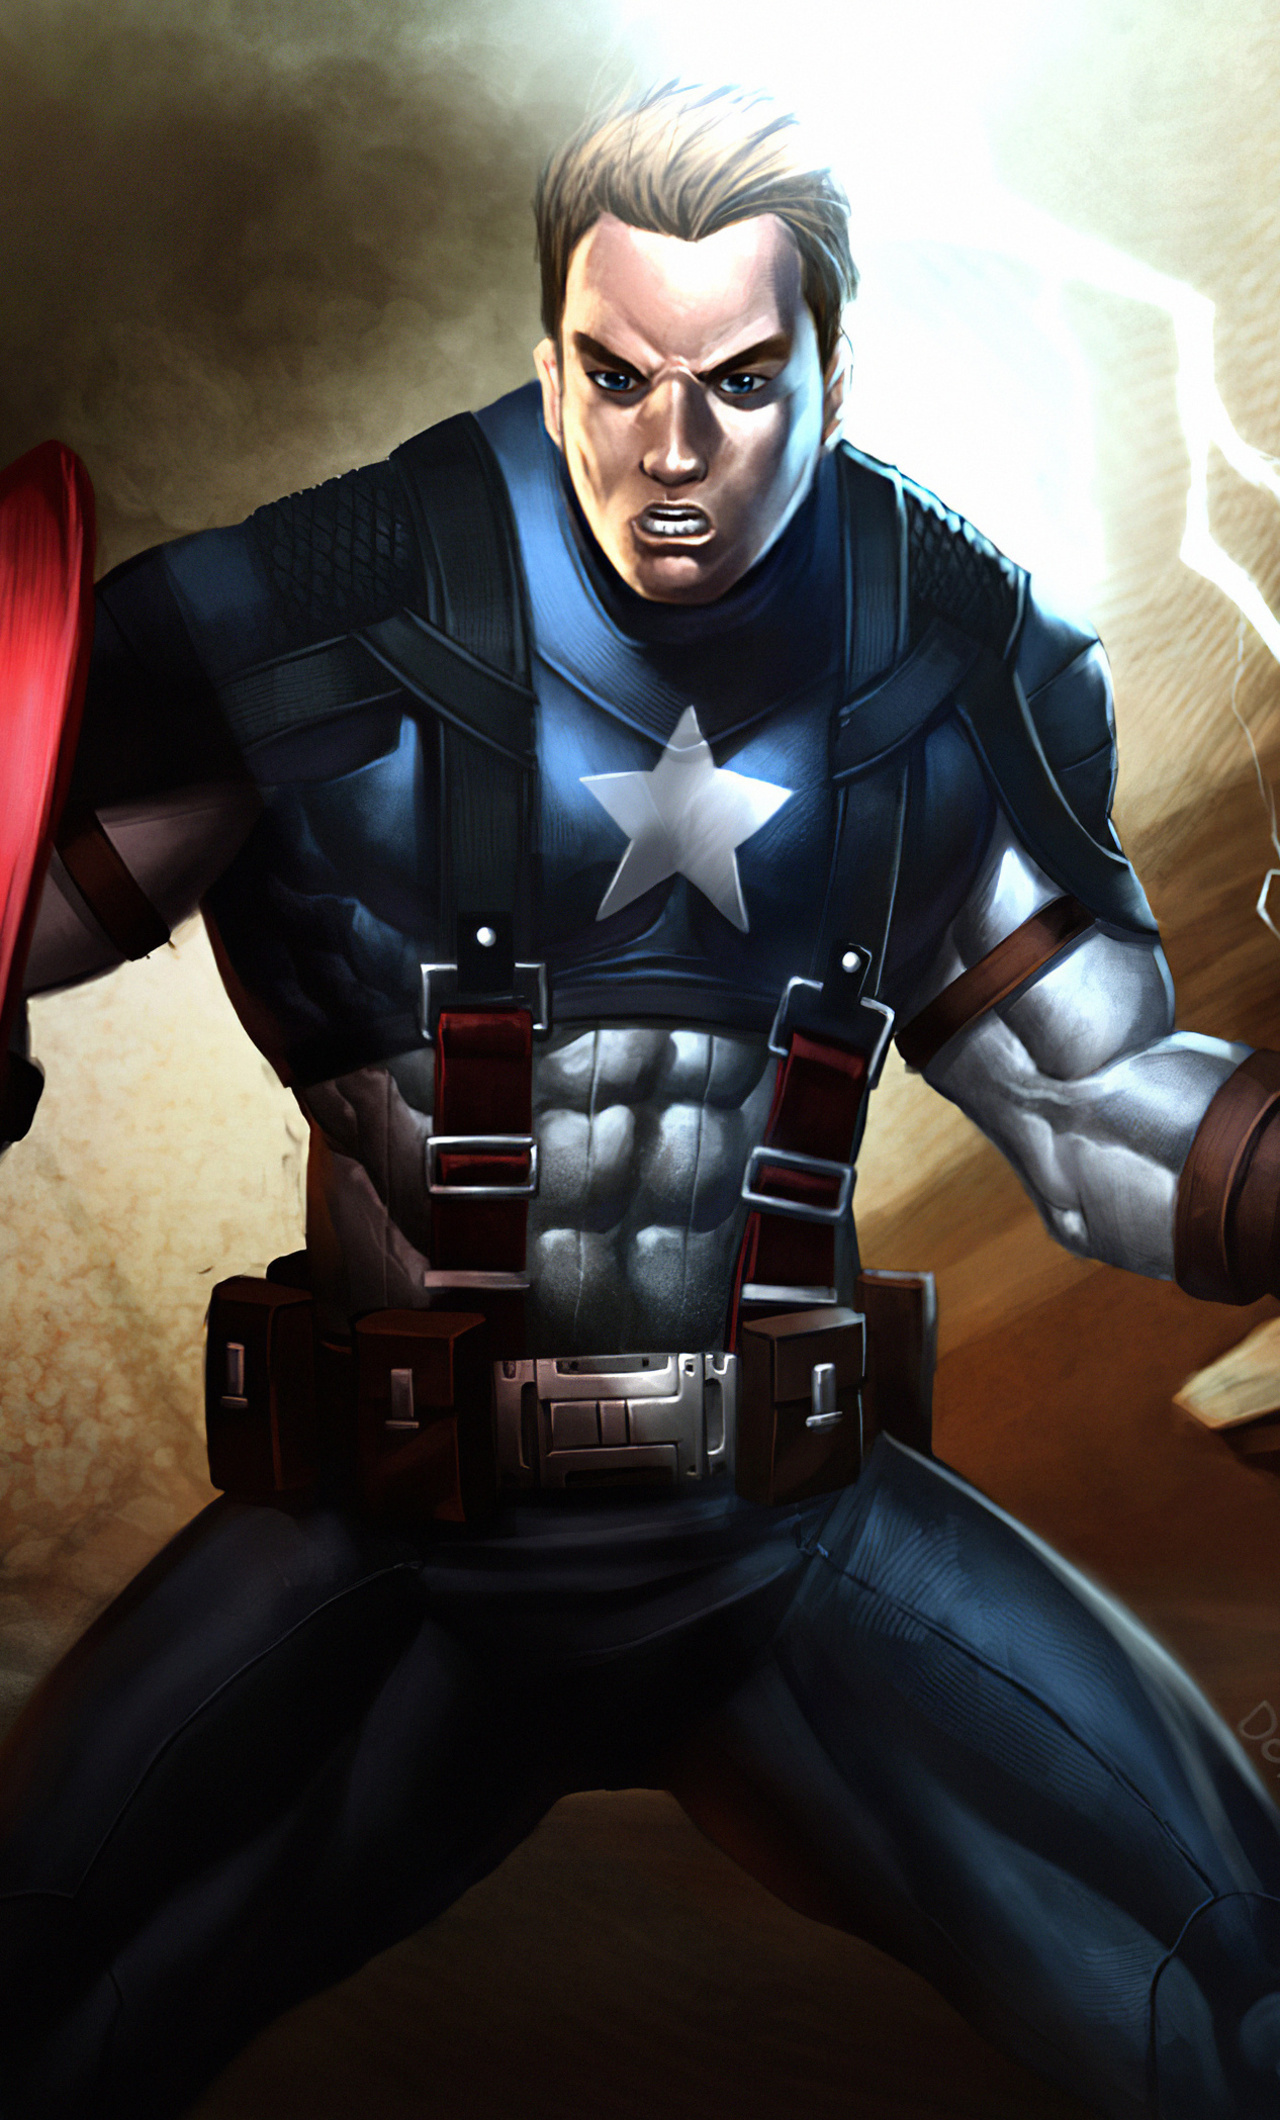 captain-america-4k-shield-hammer-b3.jpg